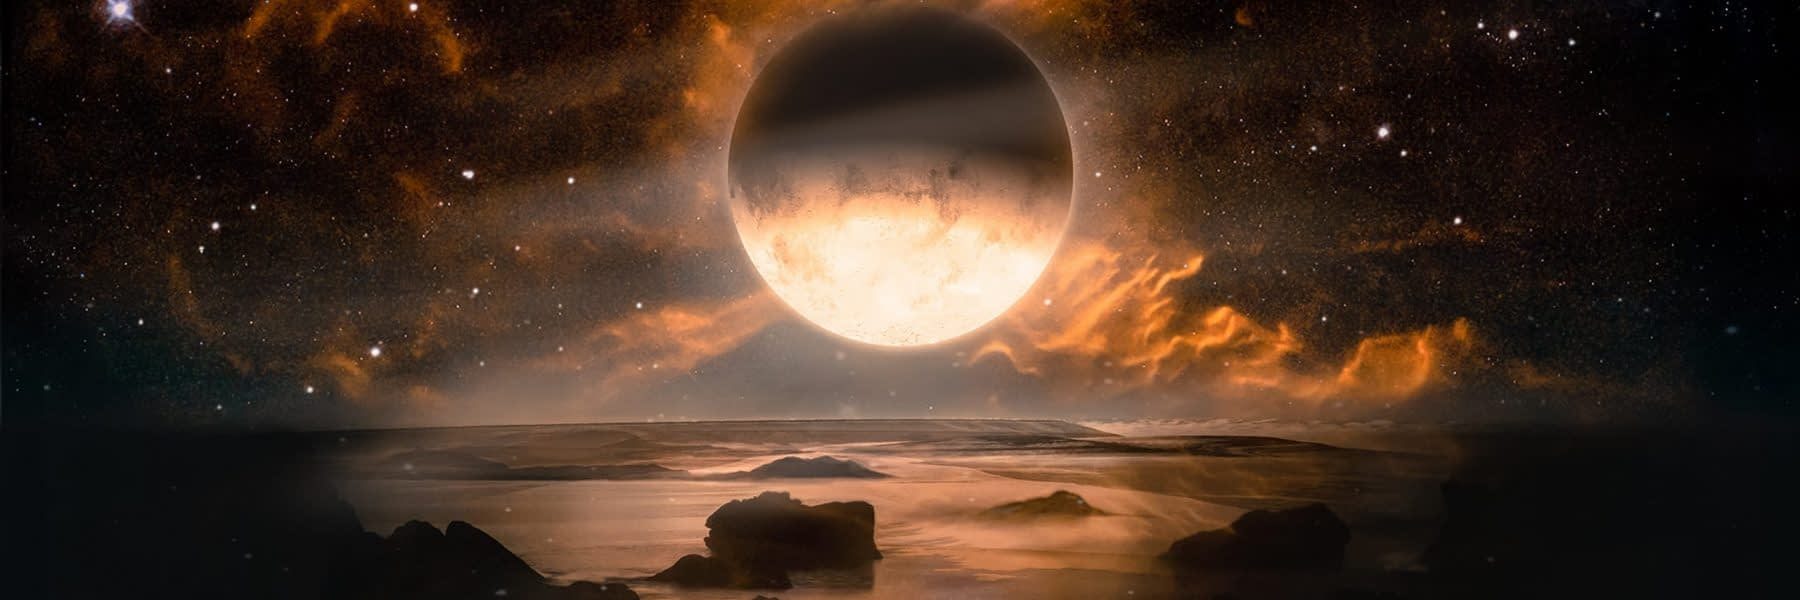 Landscape in fantasy alien planet with flaming moon and galaxy background. Elements of this image furnished by NASA